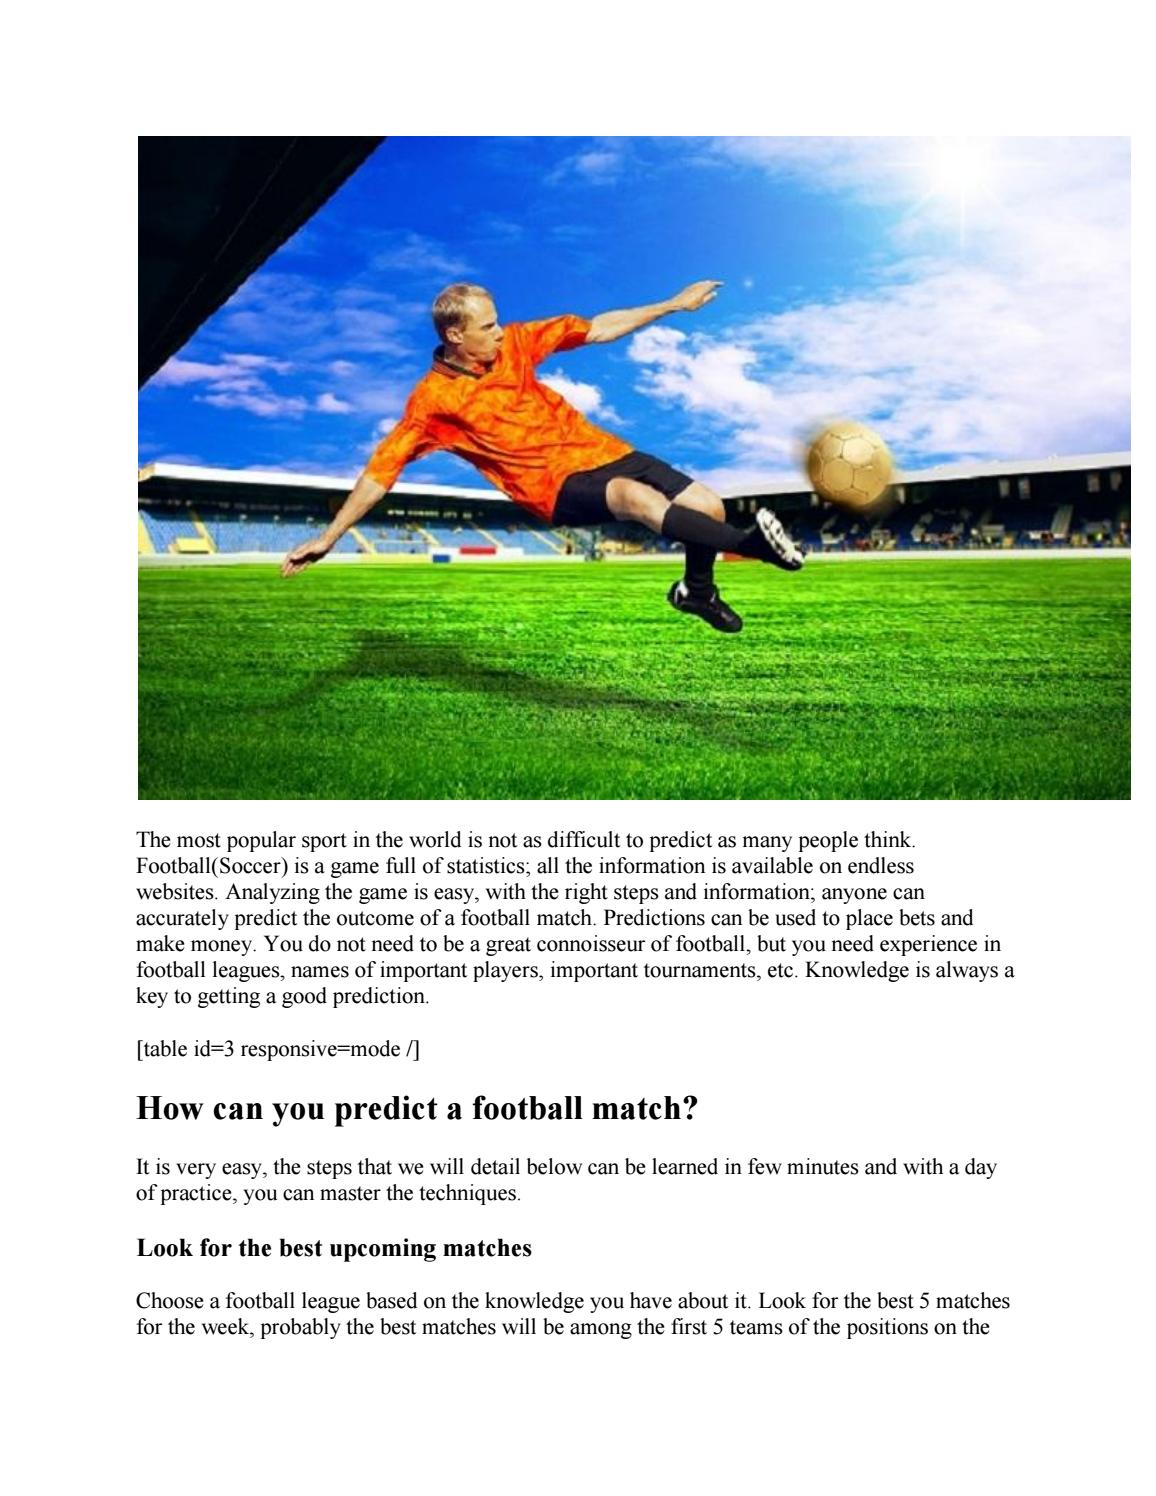 6 Easy Steps on How to Predict Football Matches Correctly